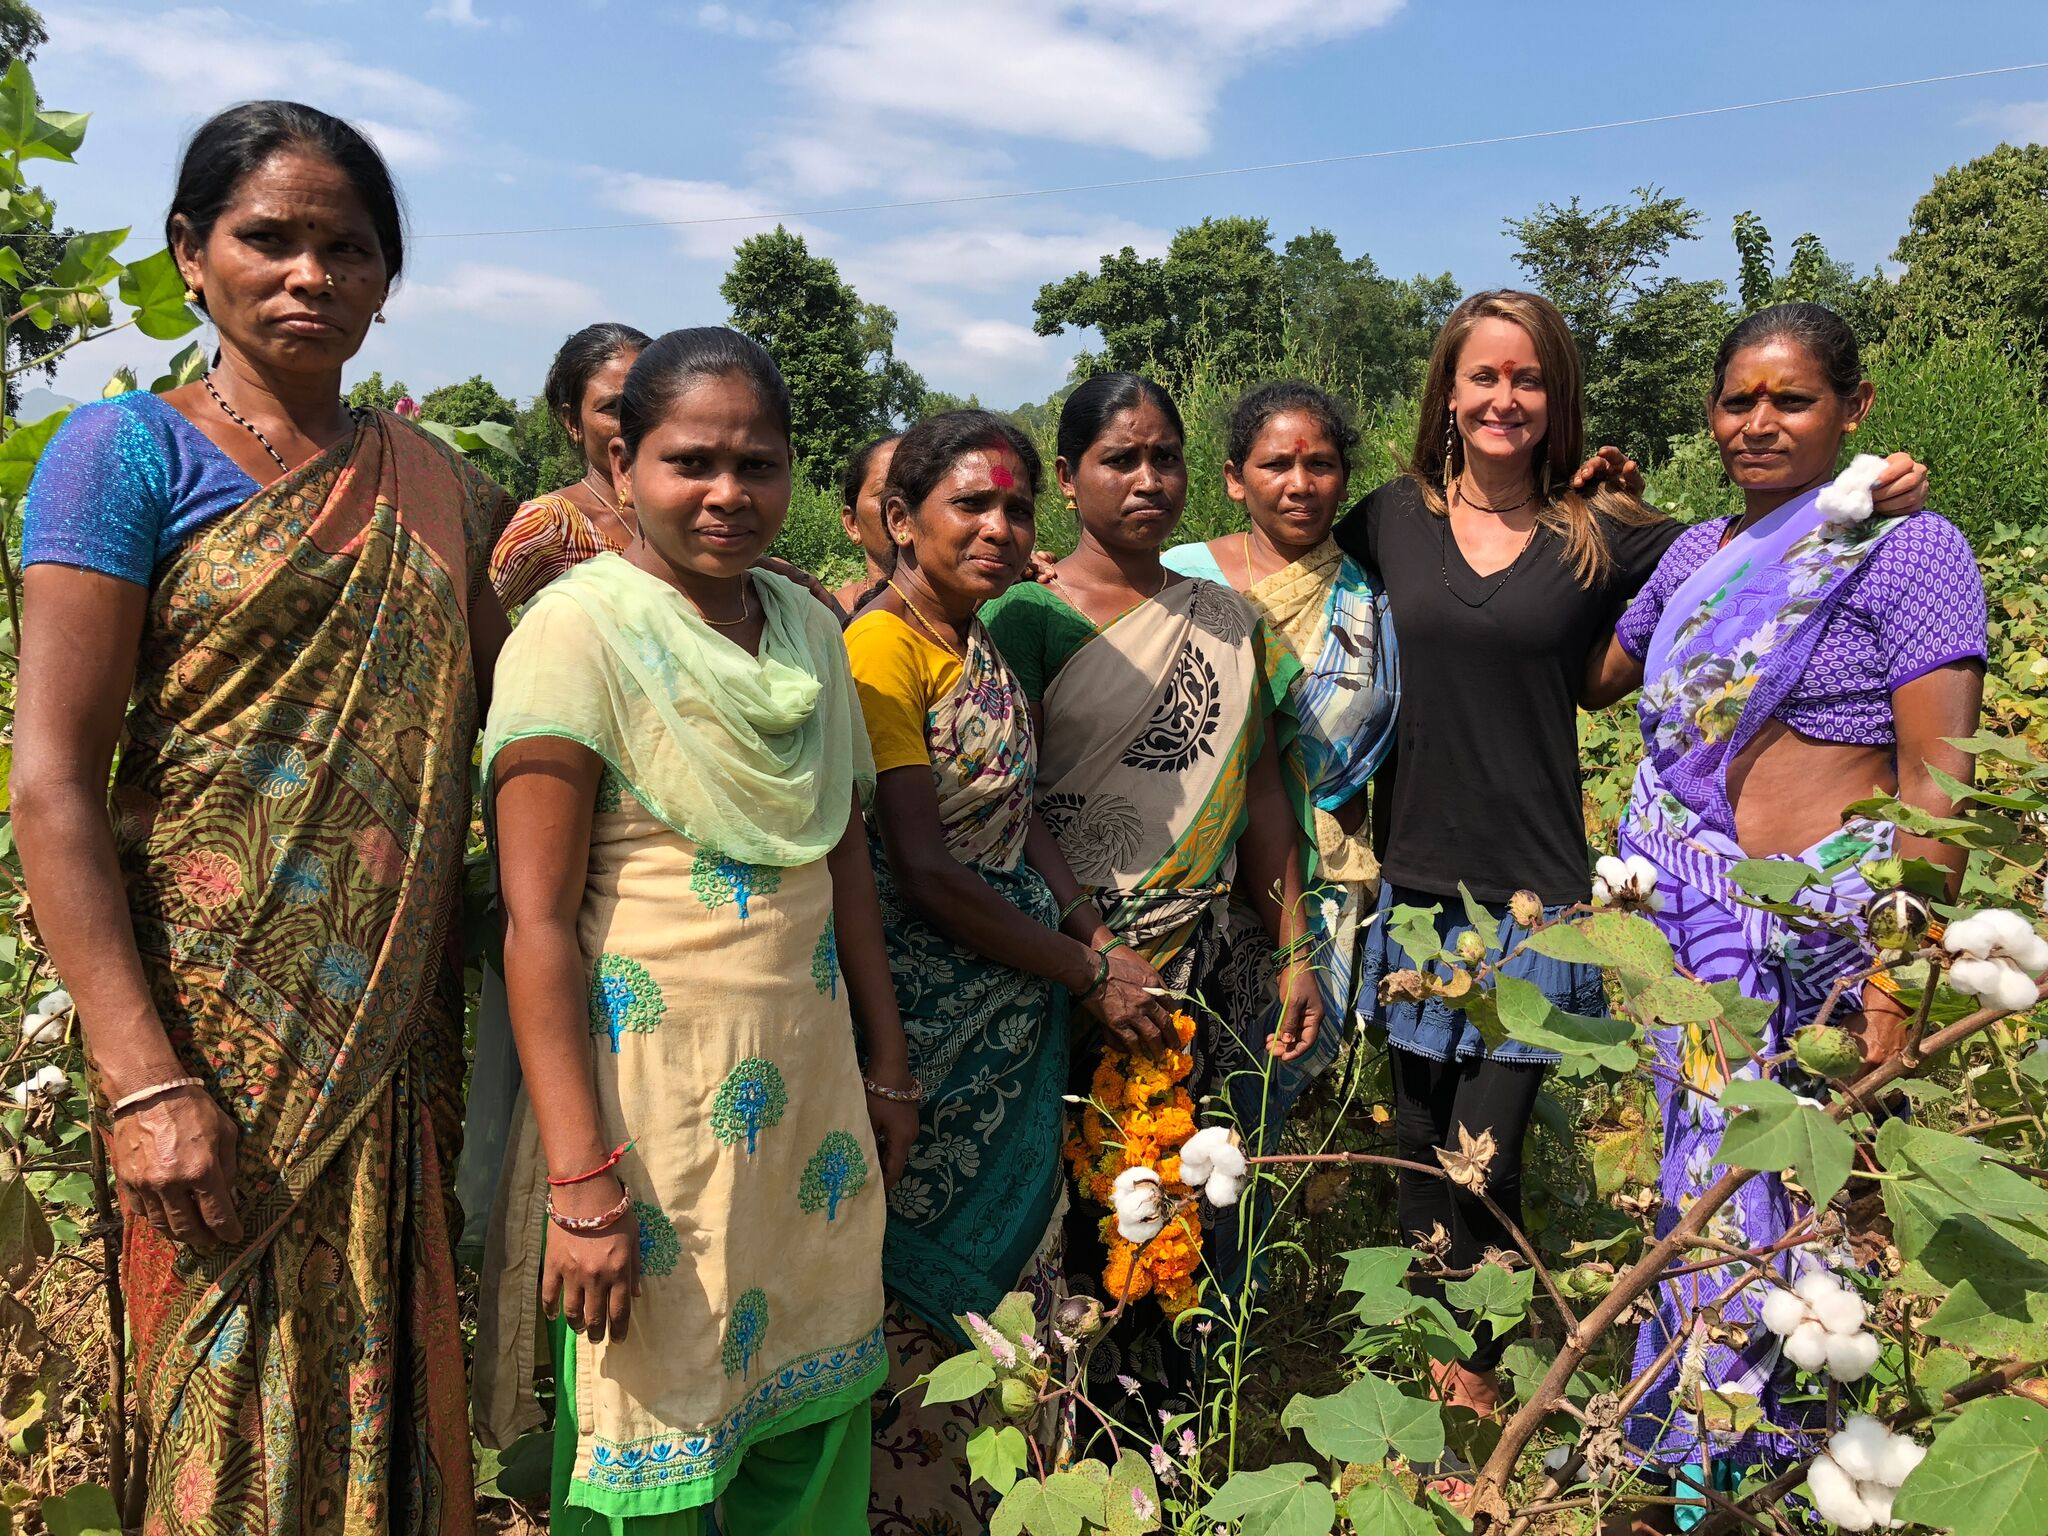 RESET female farmers pose with Marci Zaroff in India.